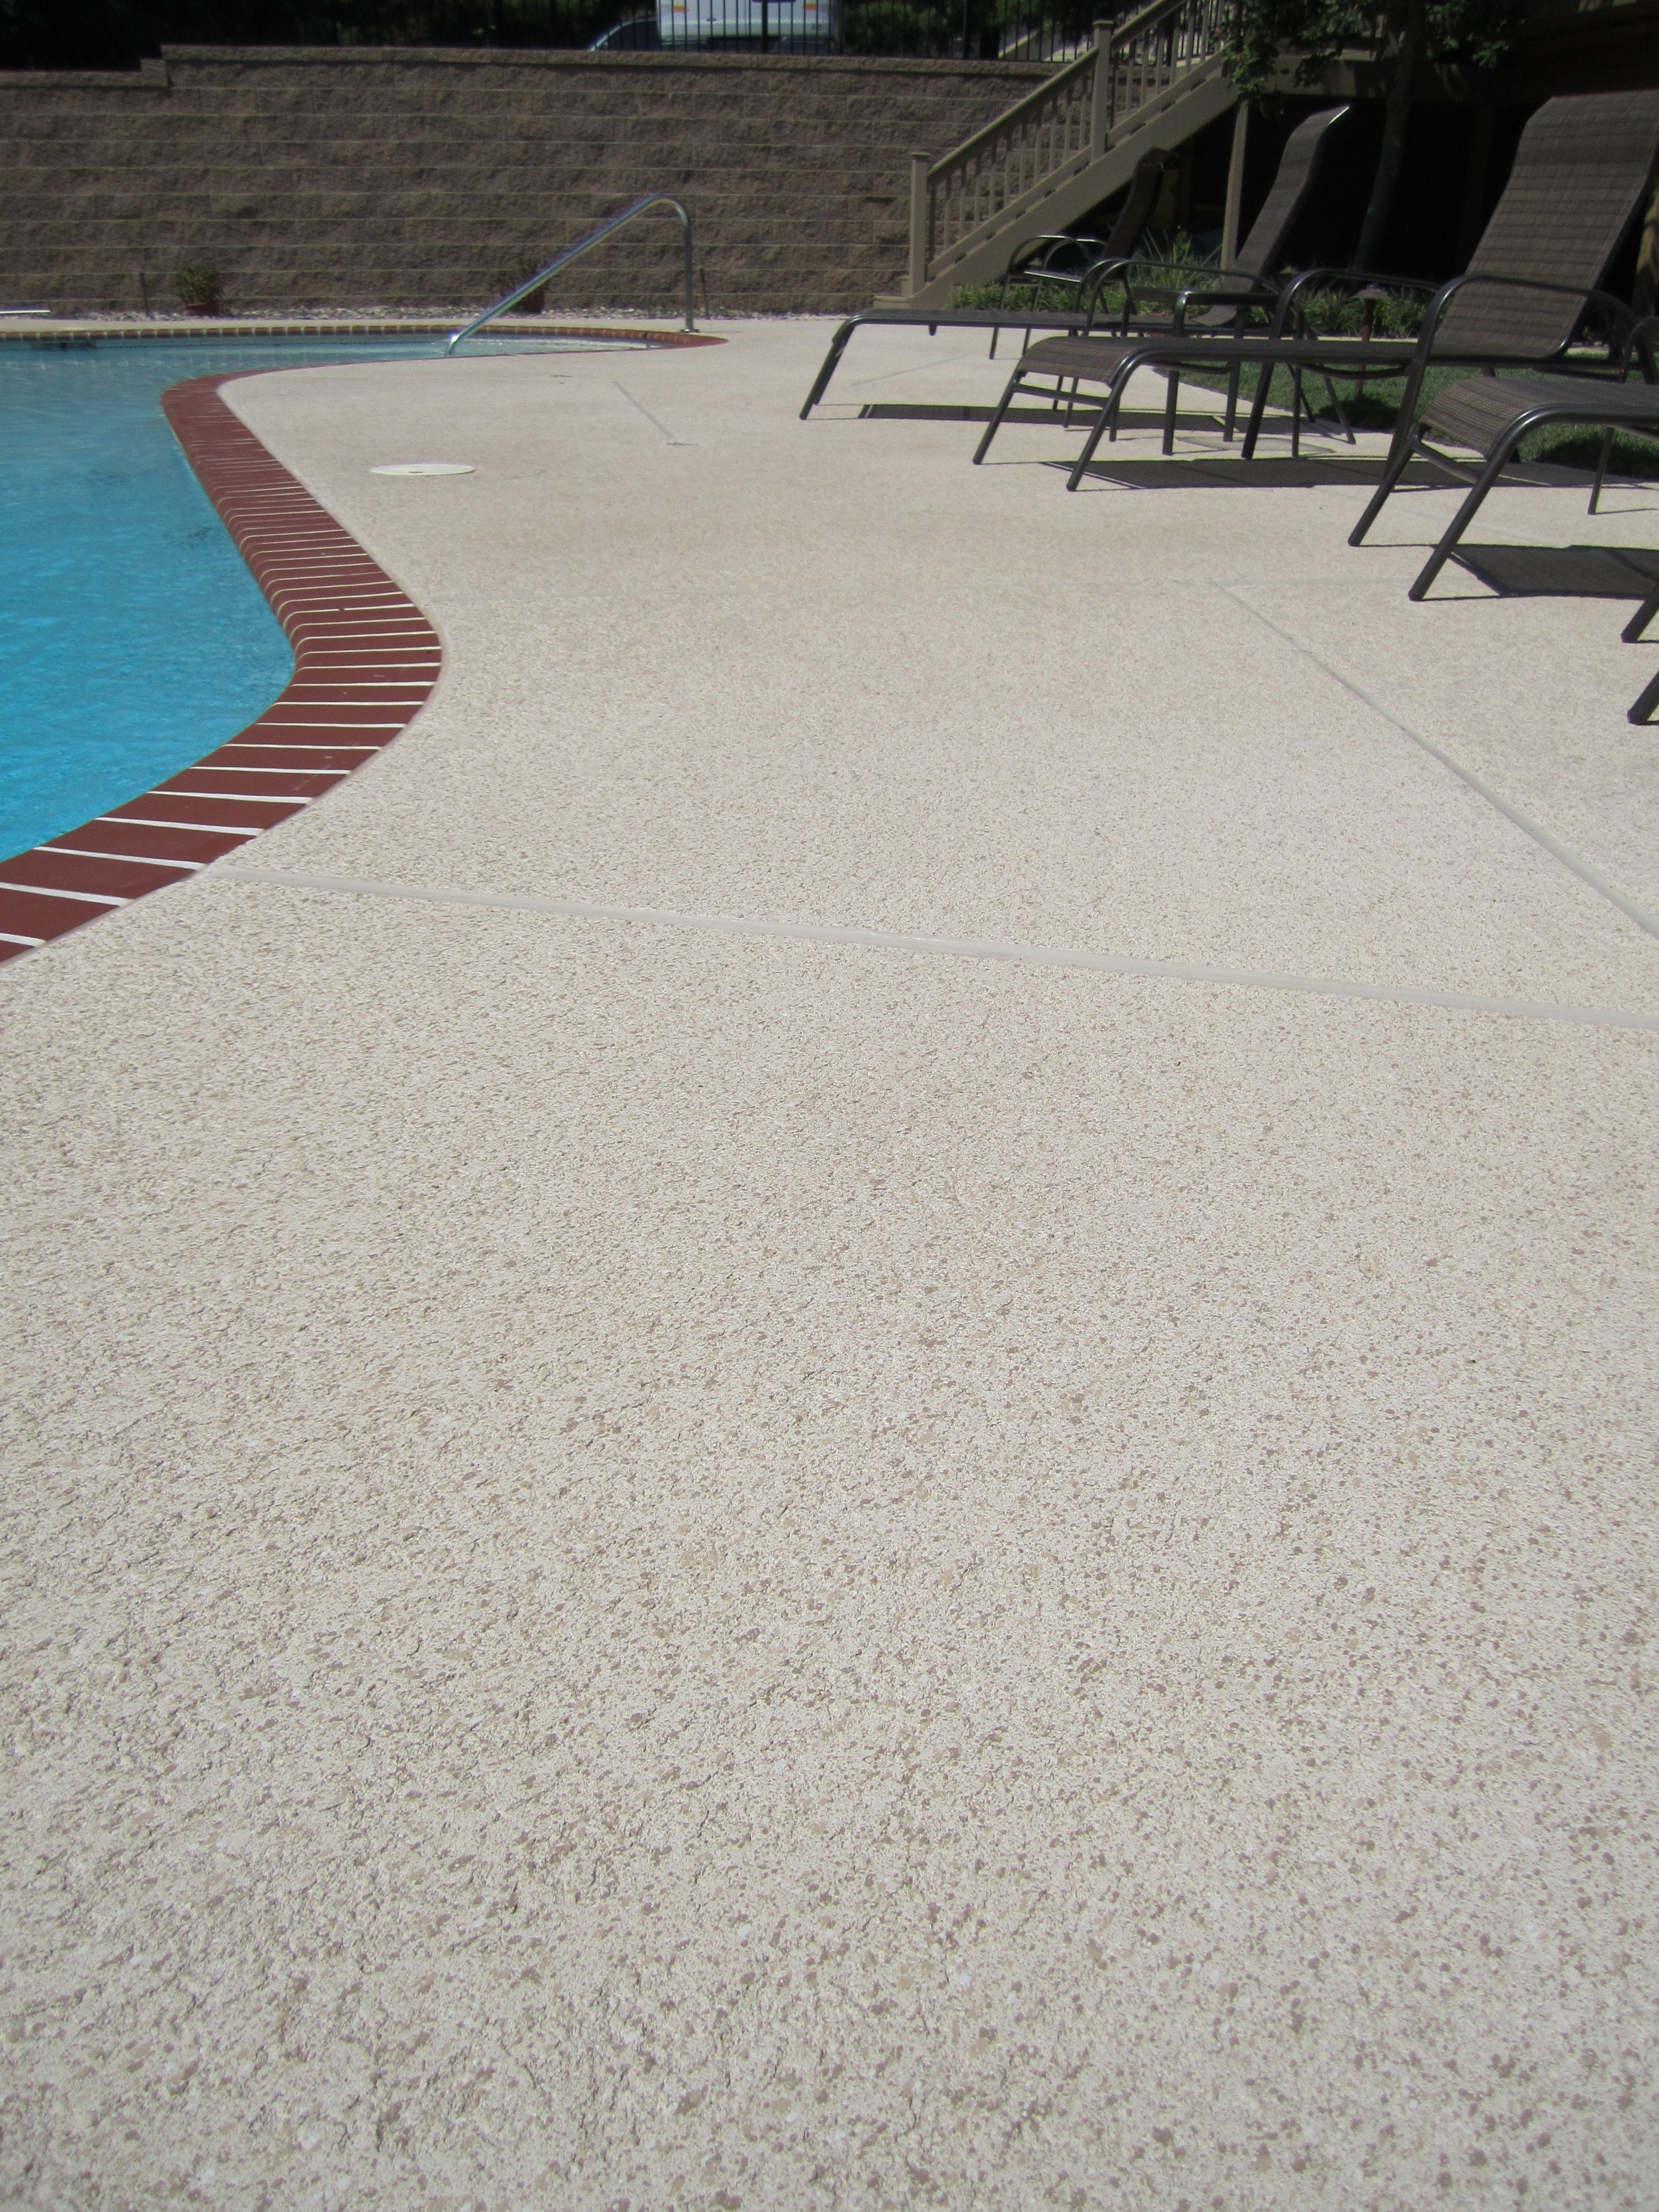 Wonderful Pool Finish Ideas For You To Copy: A Wonderful Sundek Classic Texture Design With A Two Color